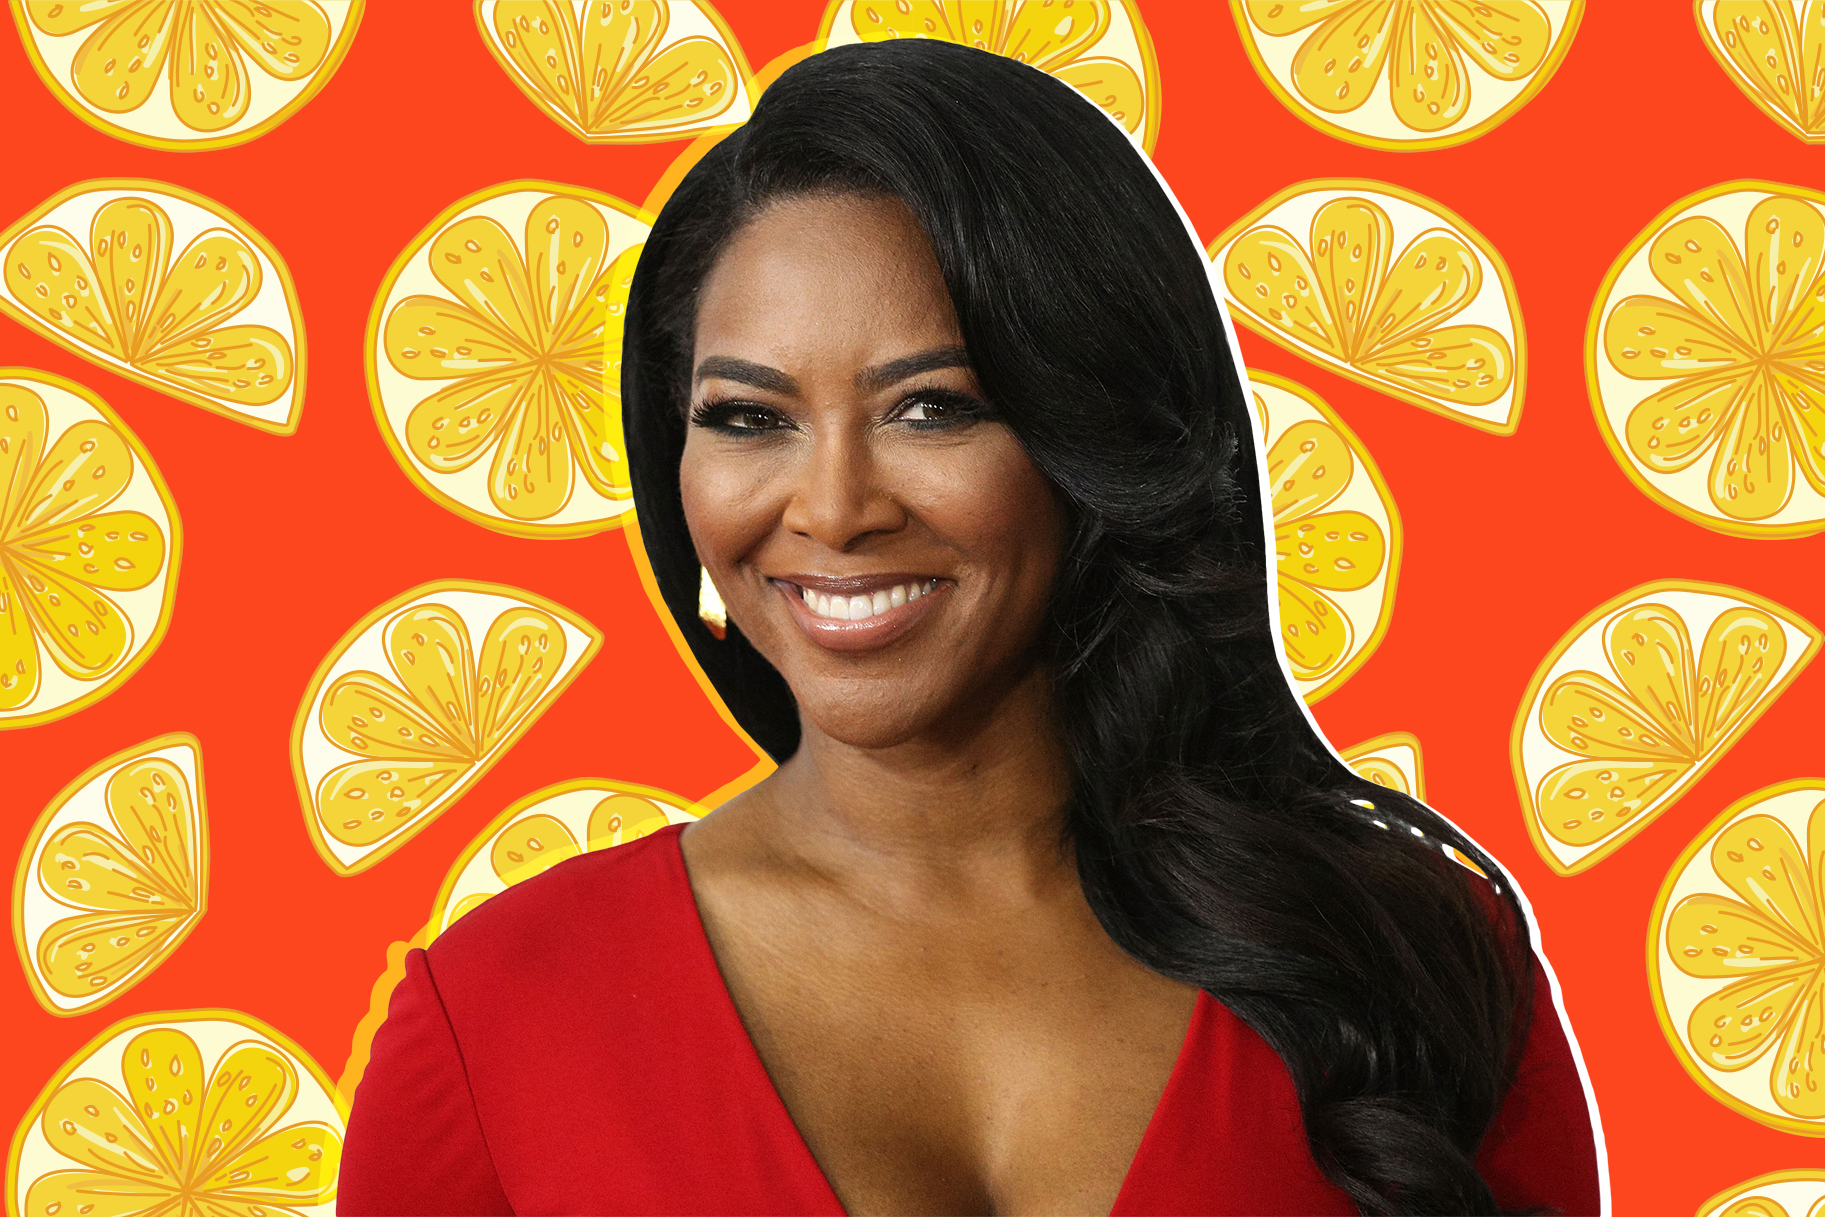 """kenya-moore-puts-her-assets-on-display-and-tells-fans-that-her-excess-pounds-keep-dropping-and-the-definition-of-her-curves-is-back-heres-her-secret"""